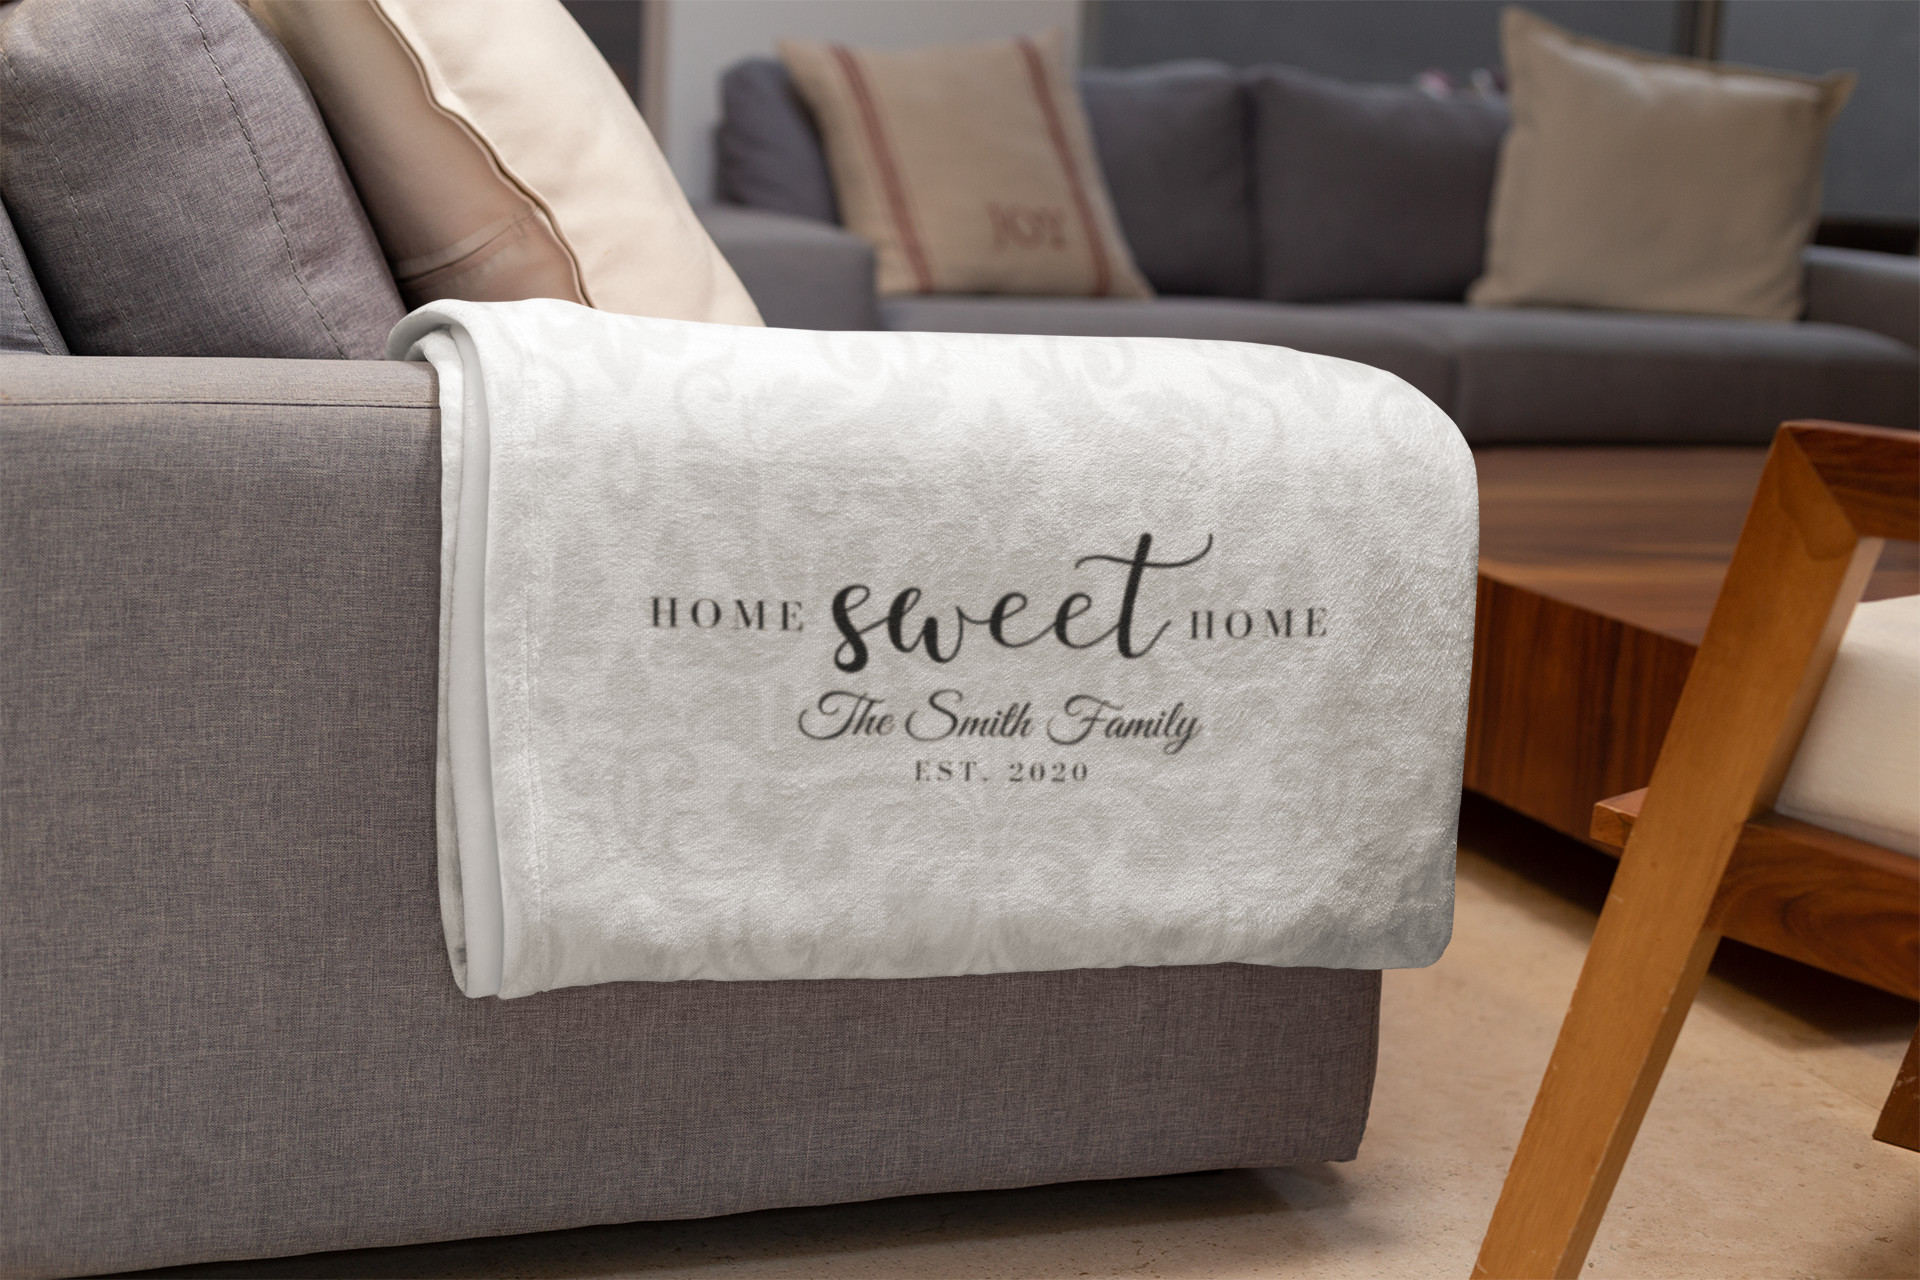 Personalized Homeowner Blanket sitting on a couch